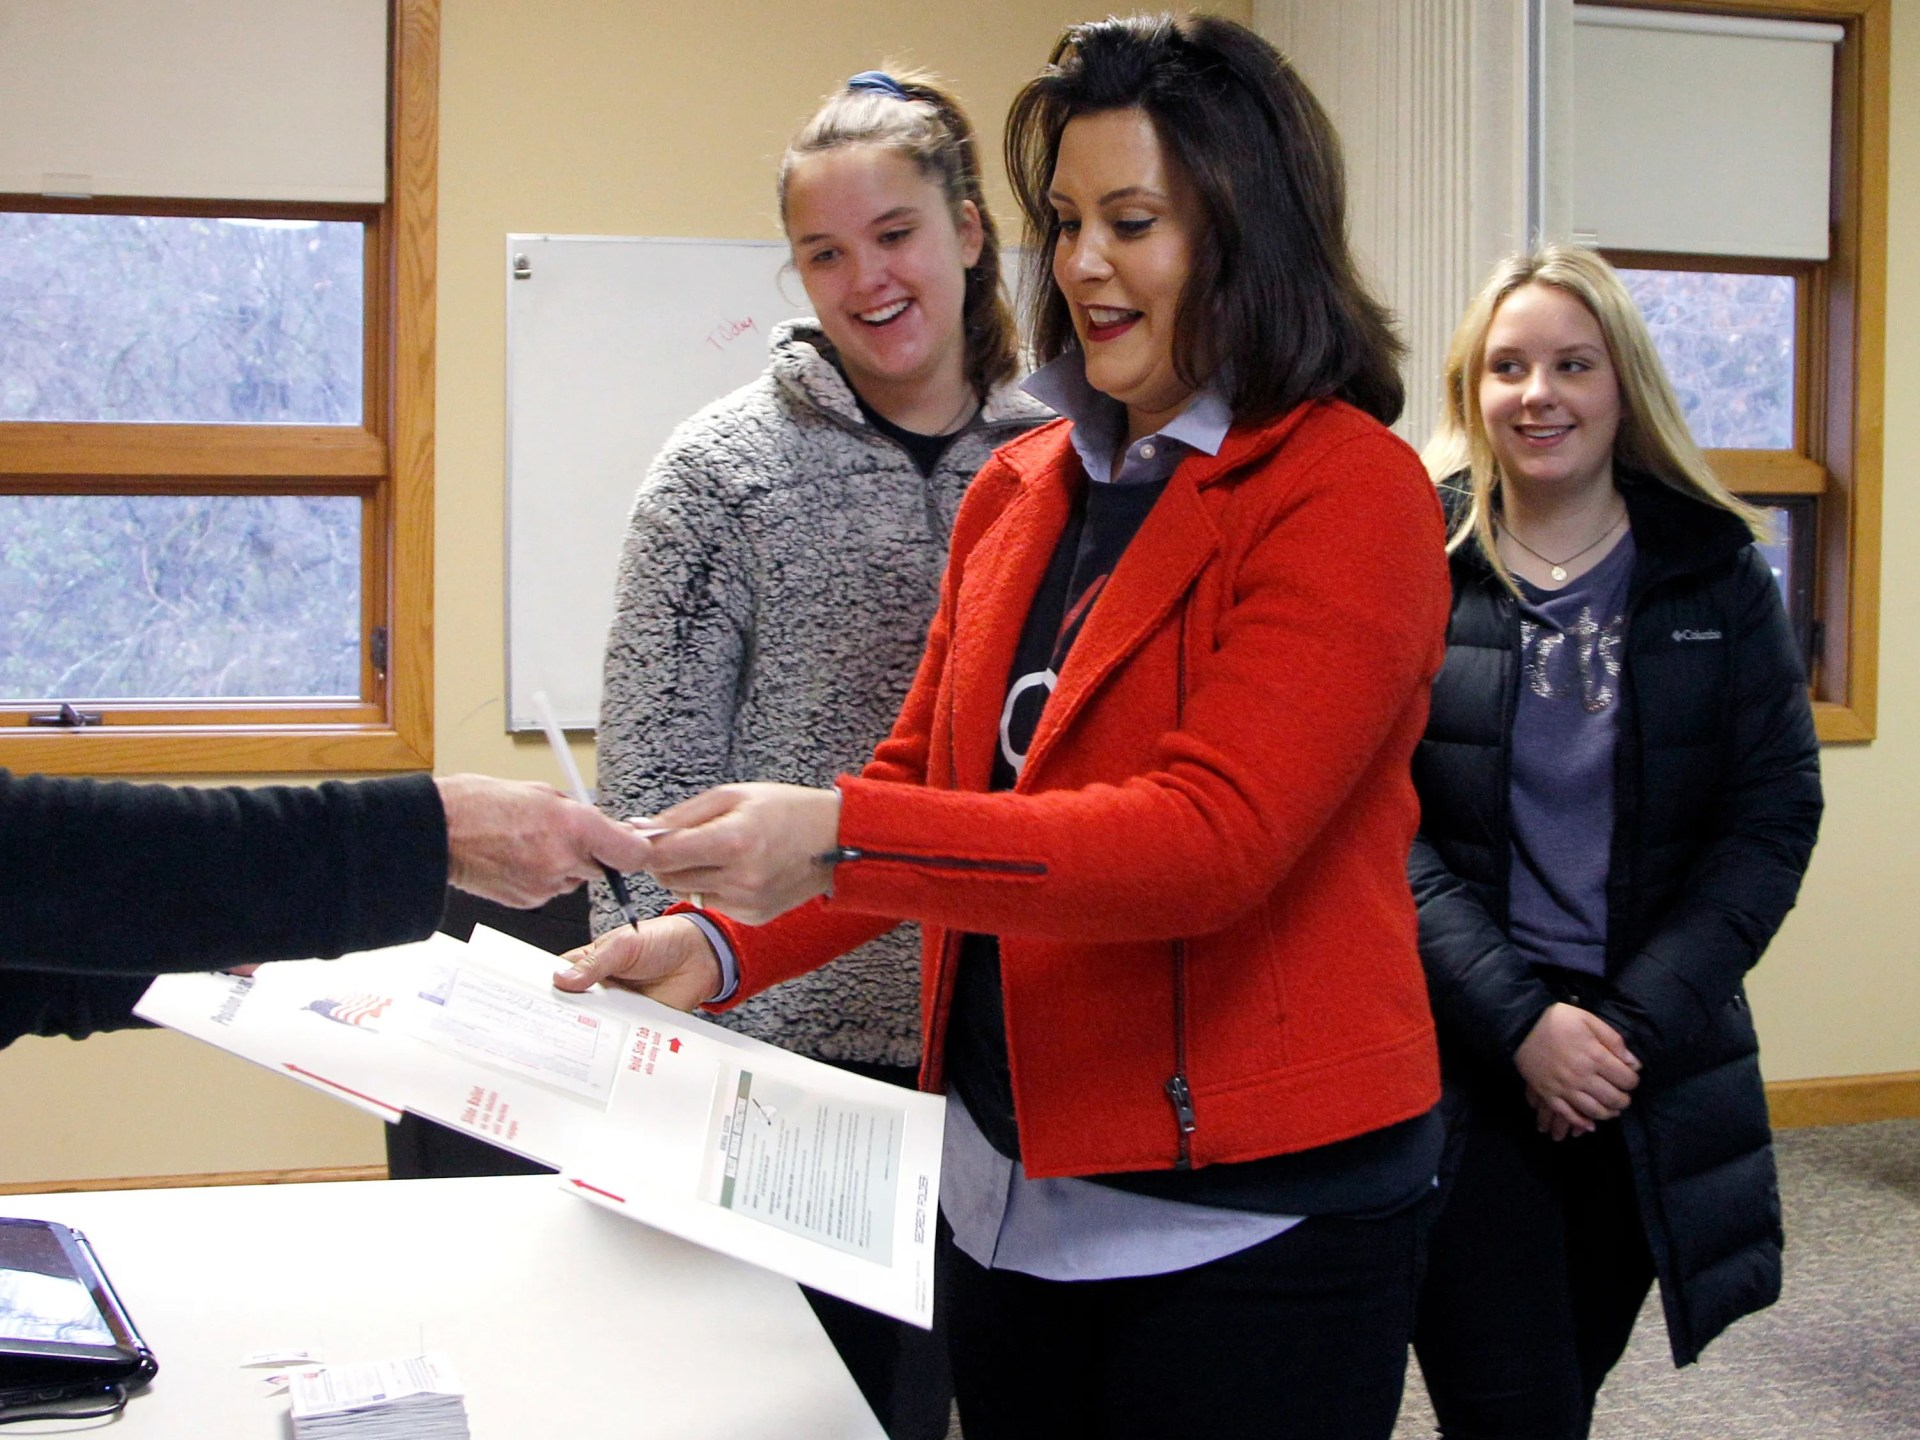 Michigan Democratic gubernatorial candidate Gretchen Whitmer, with daughters Sherry, left, and Sydney, right, turns in her privacy folder and receives a sticker after casting her ballot, Tuesday, Nov. 6, 2018, at St. Paul Lutheran Church in East Lansing.